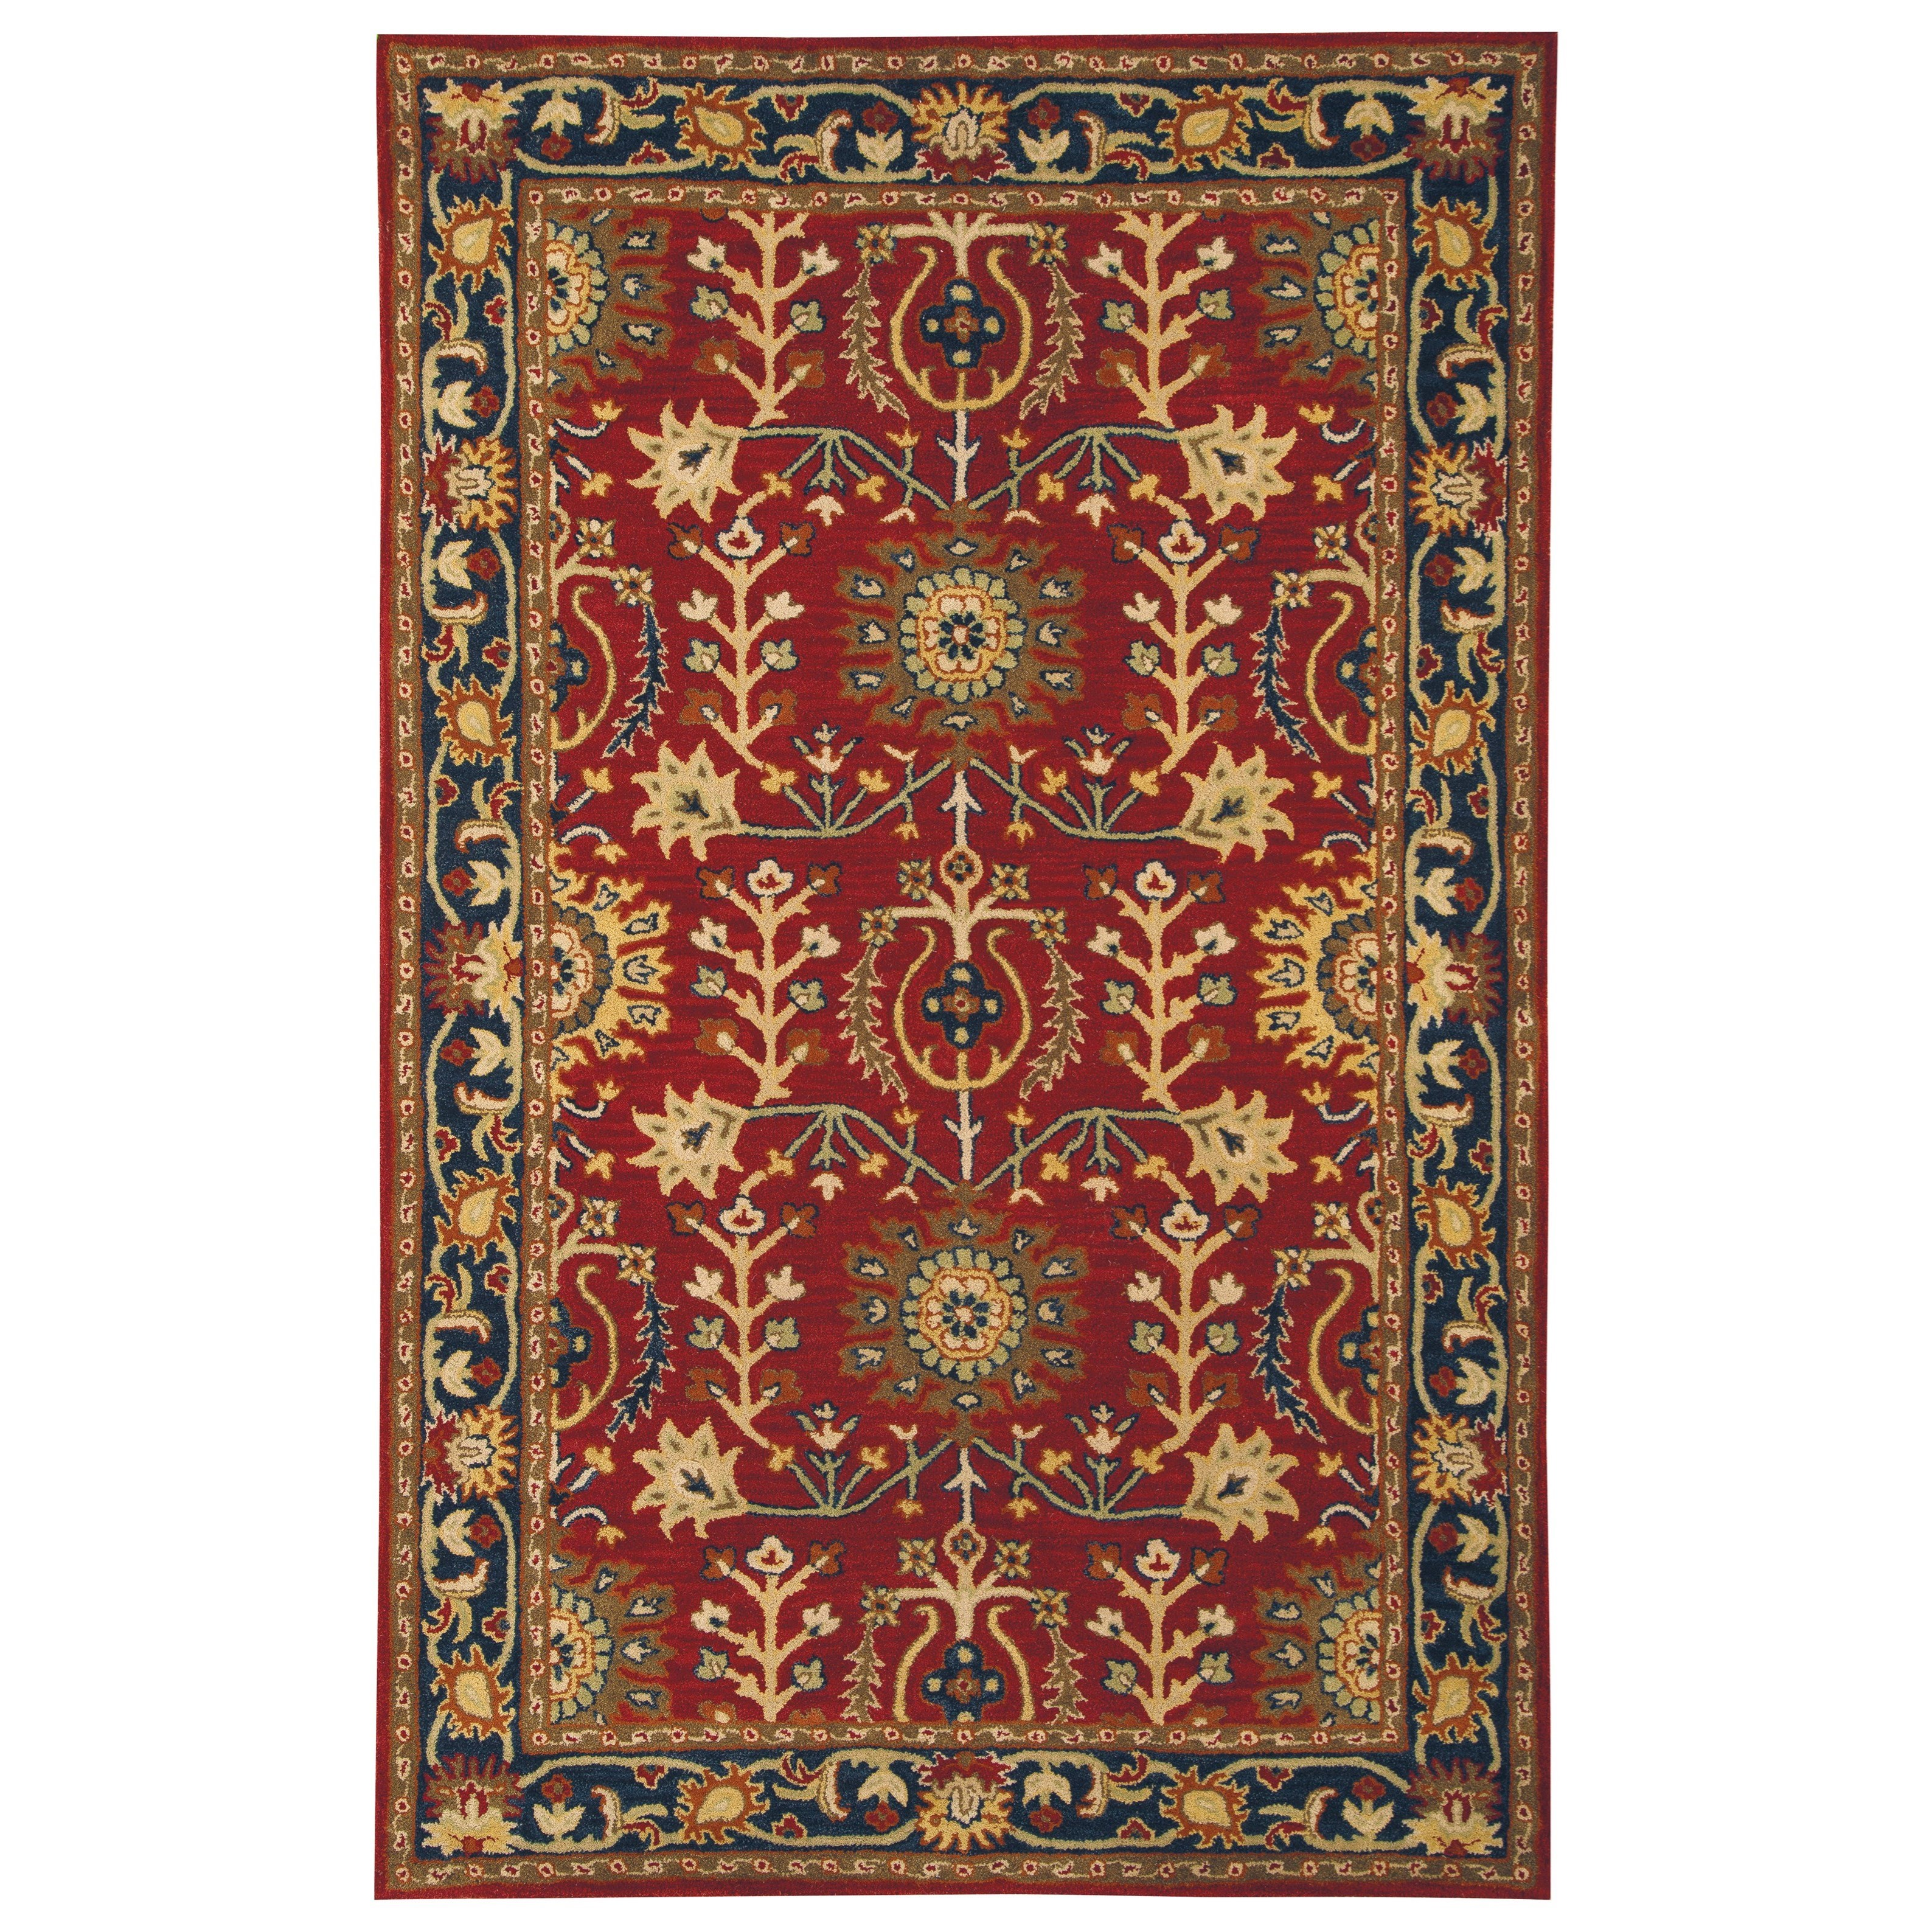 Signature Design by Ashley Traditional Classics Area Rugs Lymen Red/Black/Gray Medium Rug - Item Number: R400352